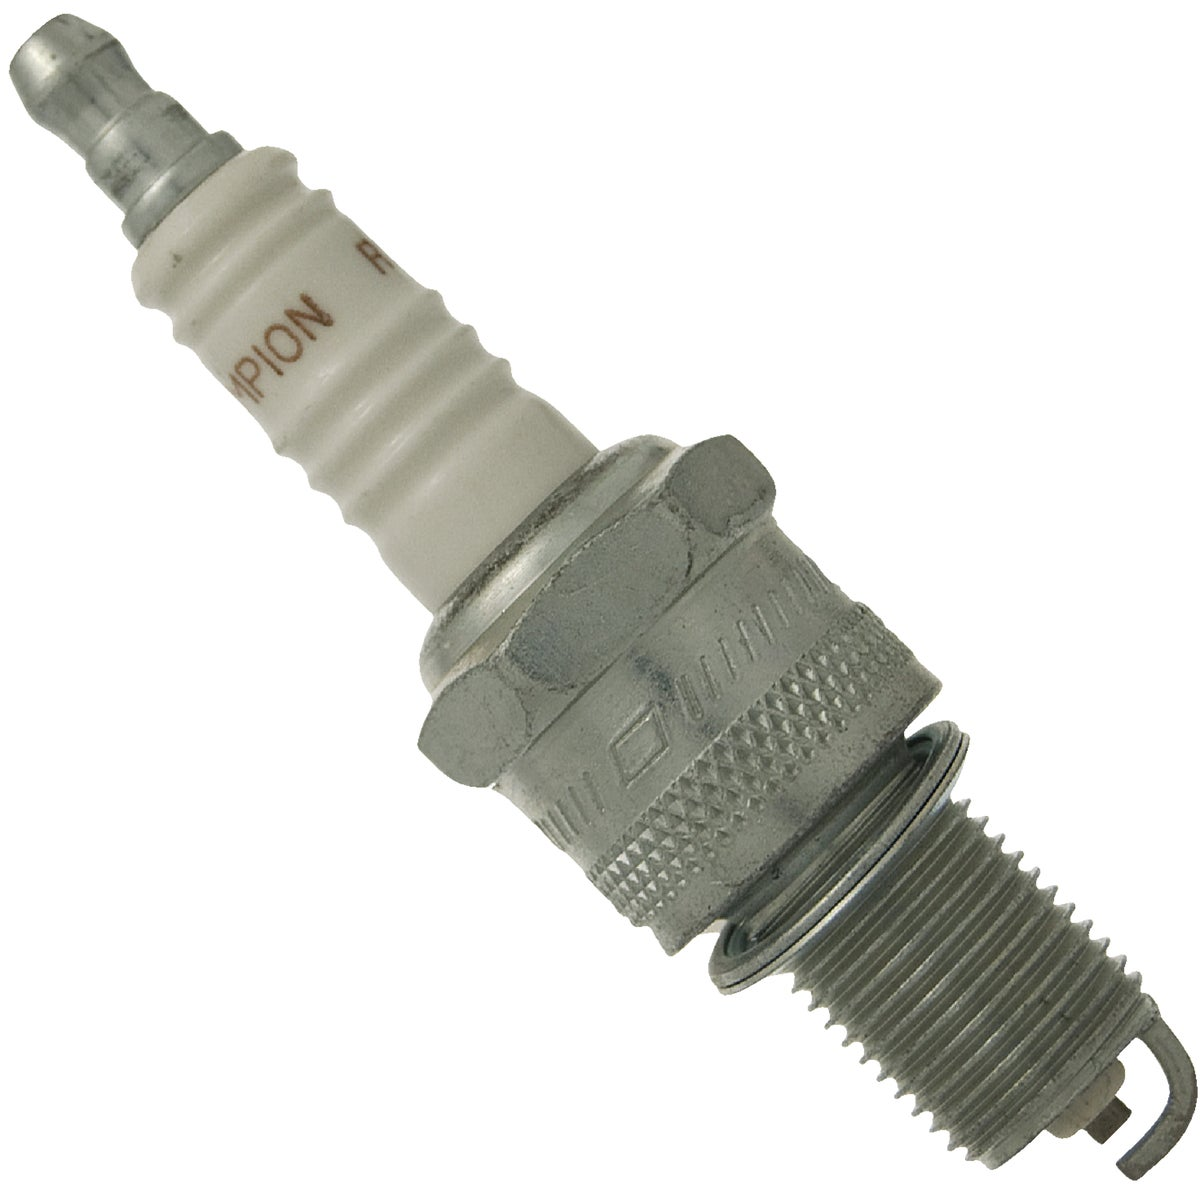 RN14YC SPARK PLUG - 405 by Federal Mogul